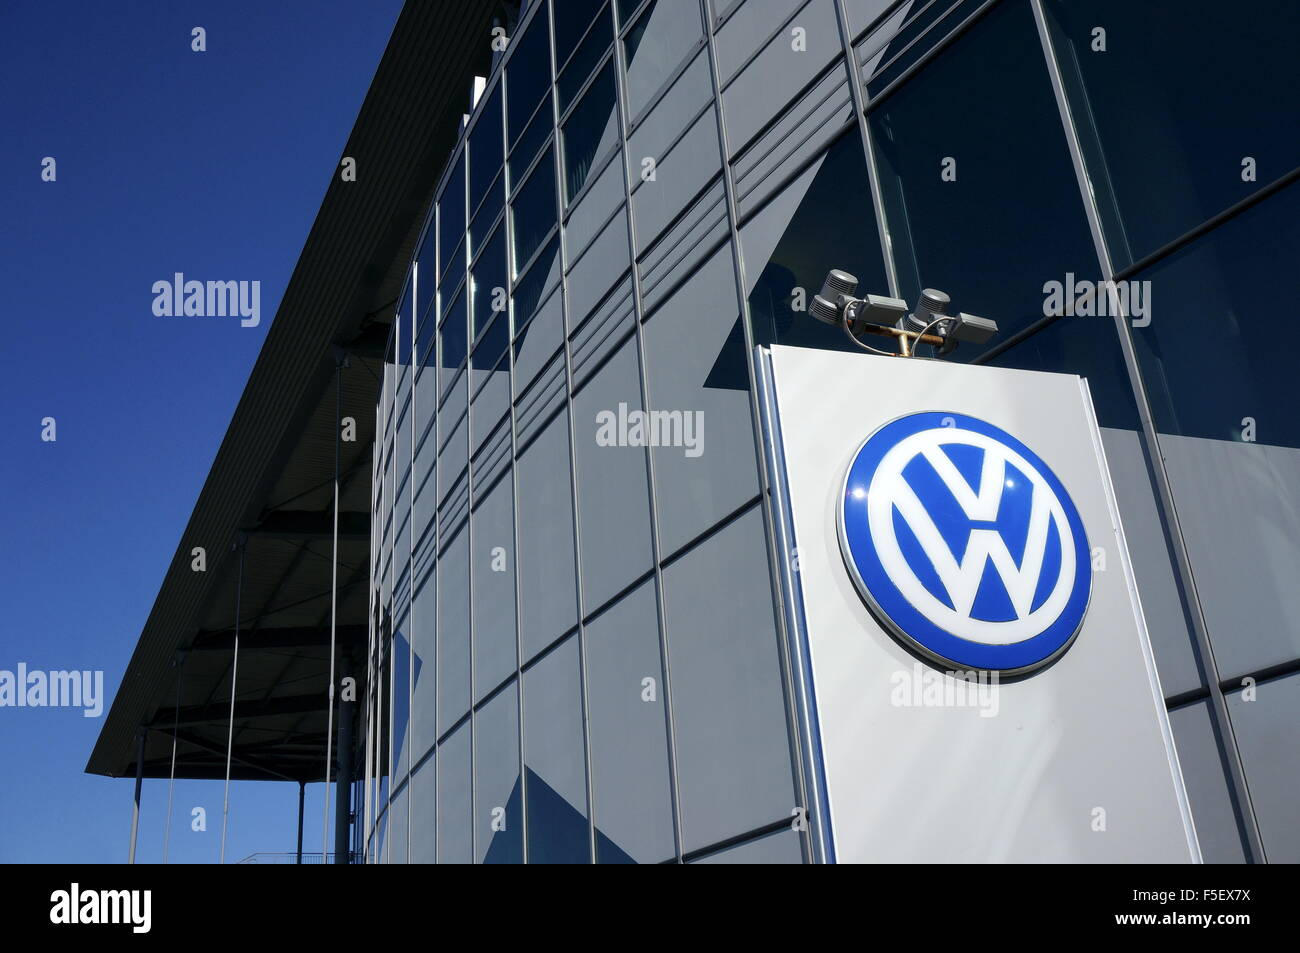 Wolfsburg, Germany. 01st Oct, 2015. A sign with the Volkswagen logo in front of the Volkswagen Arena in Wolfsburg, - Stock Image